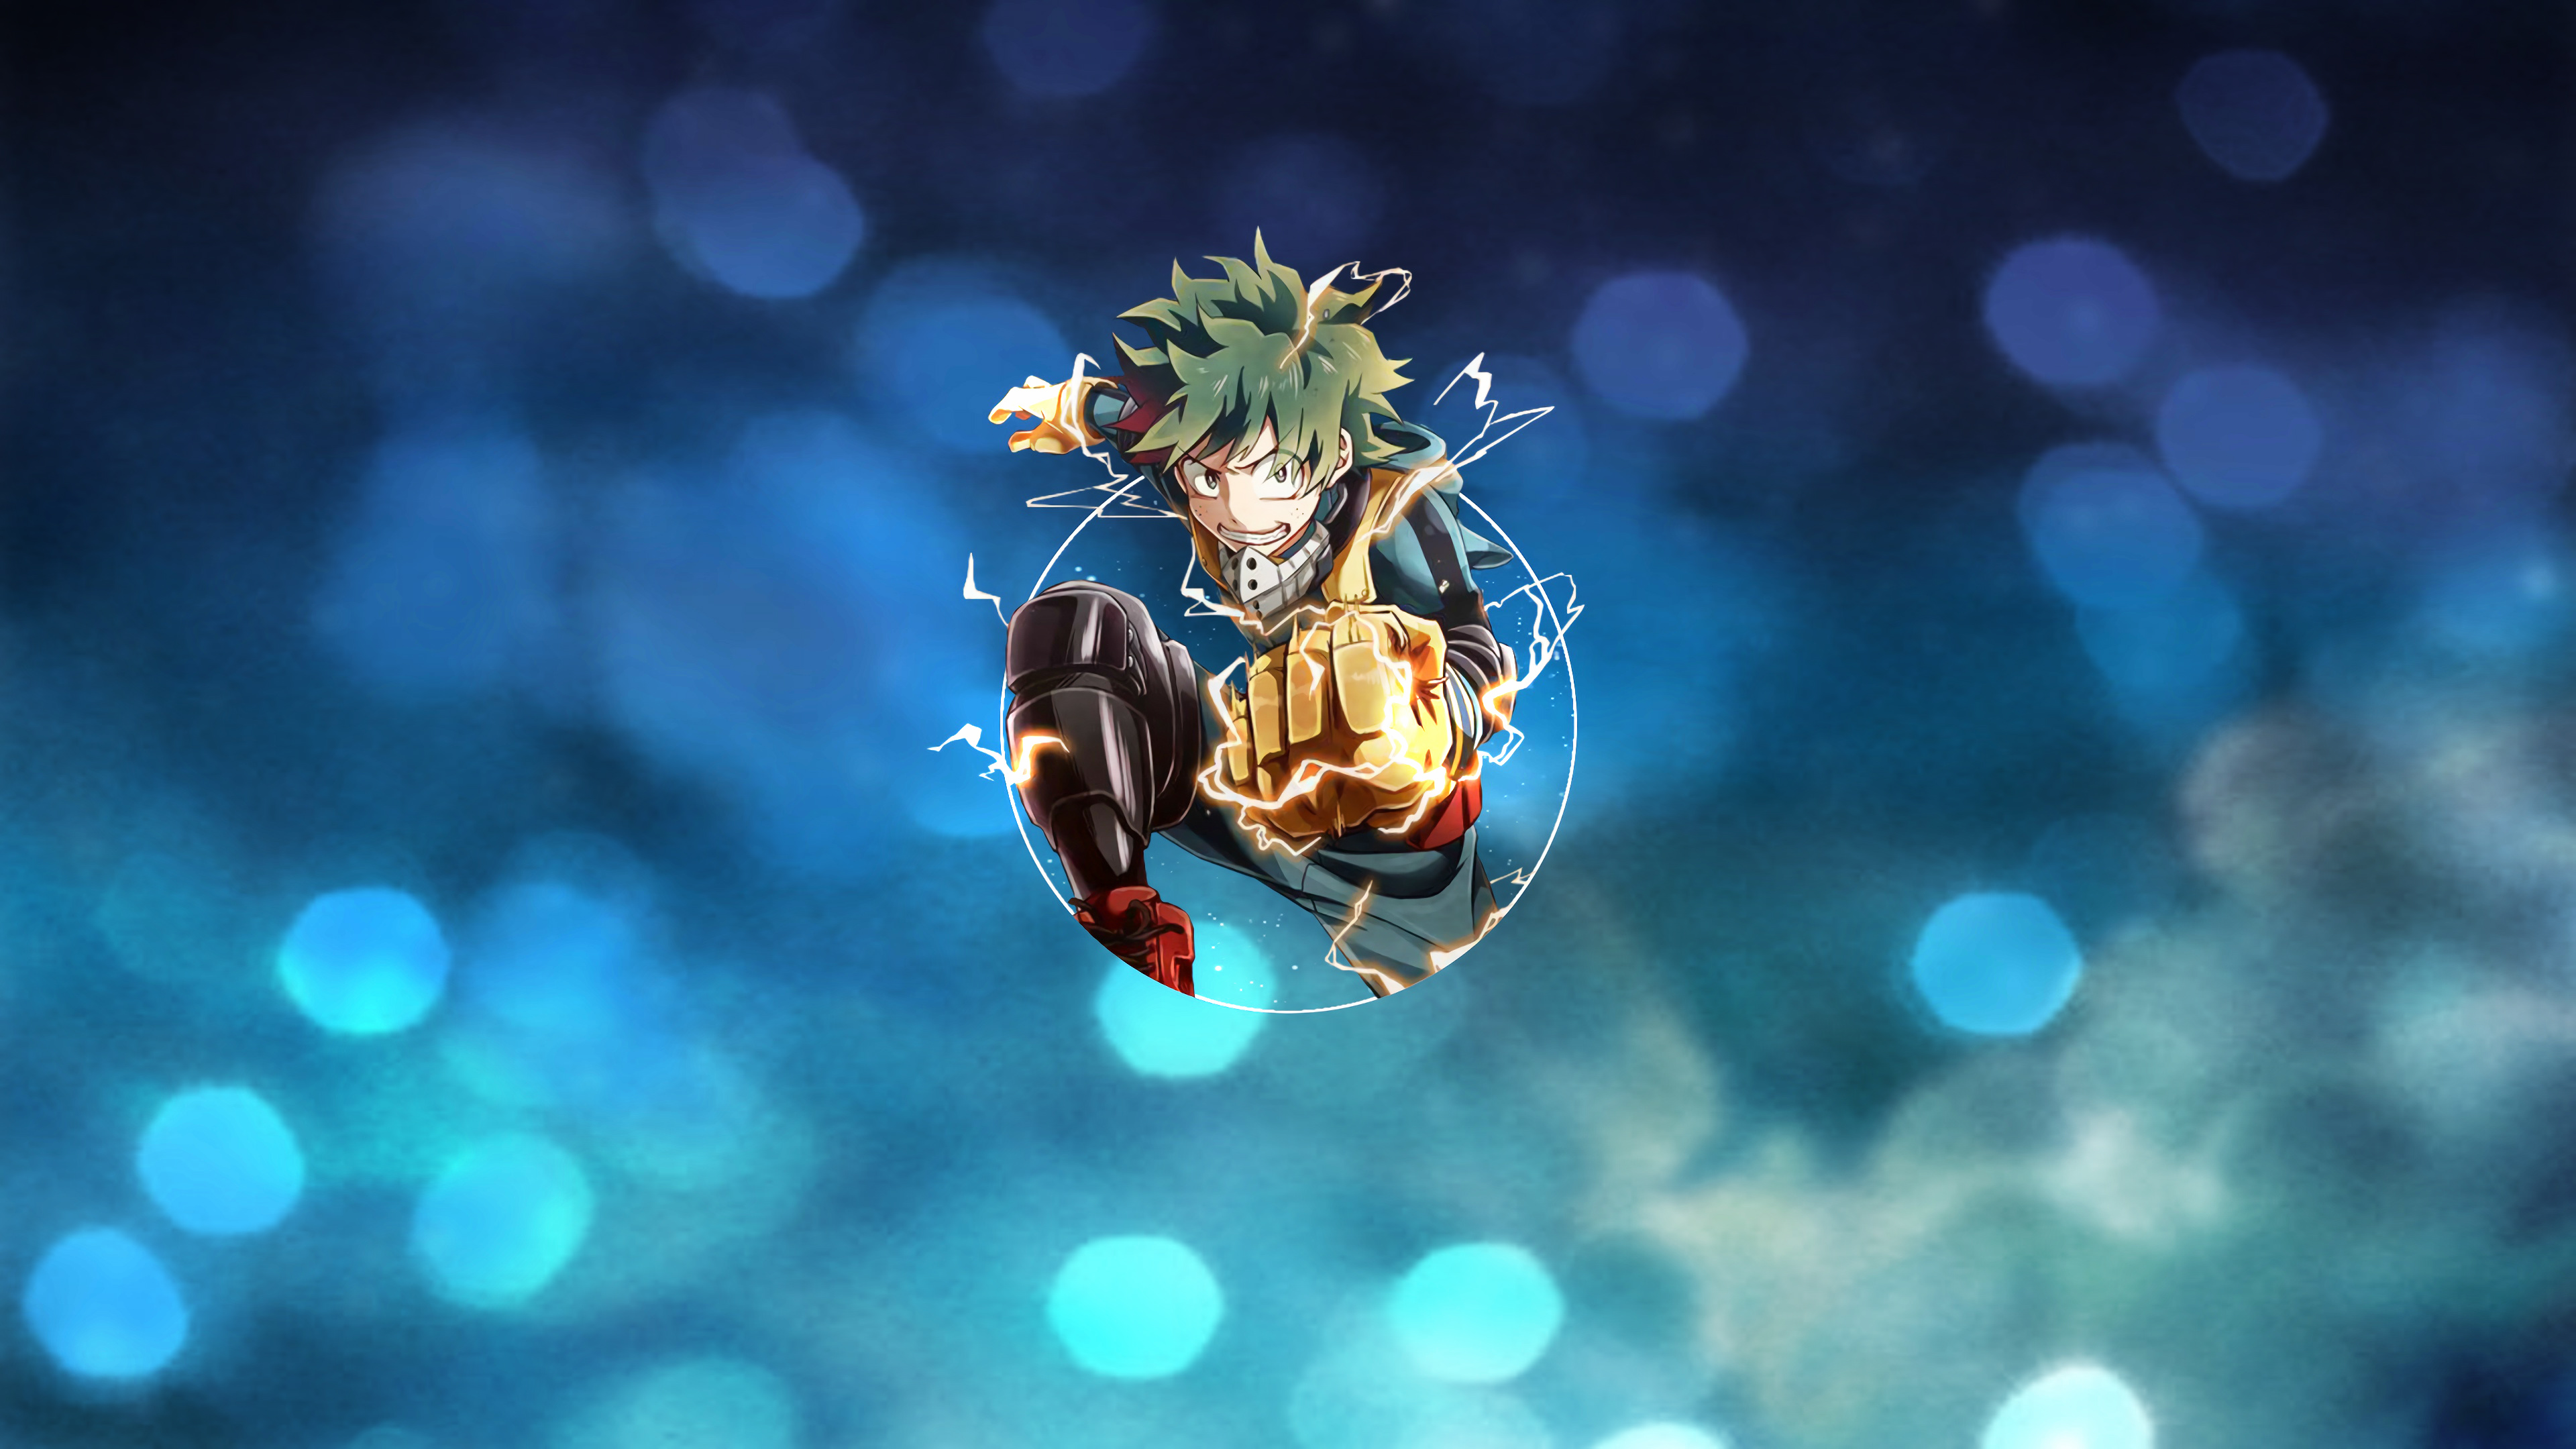 Boku no Hero Midoriya background 9